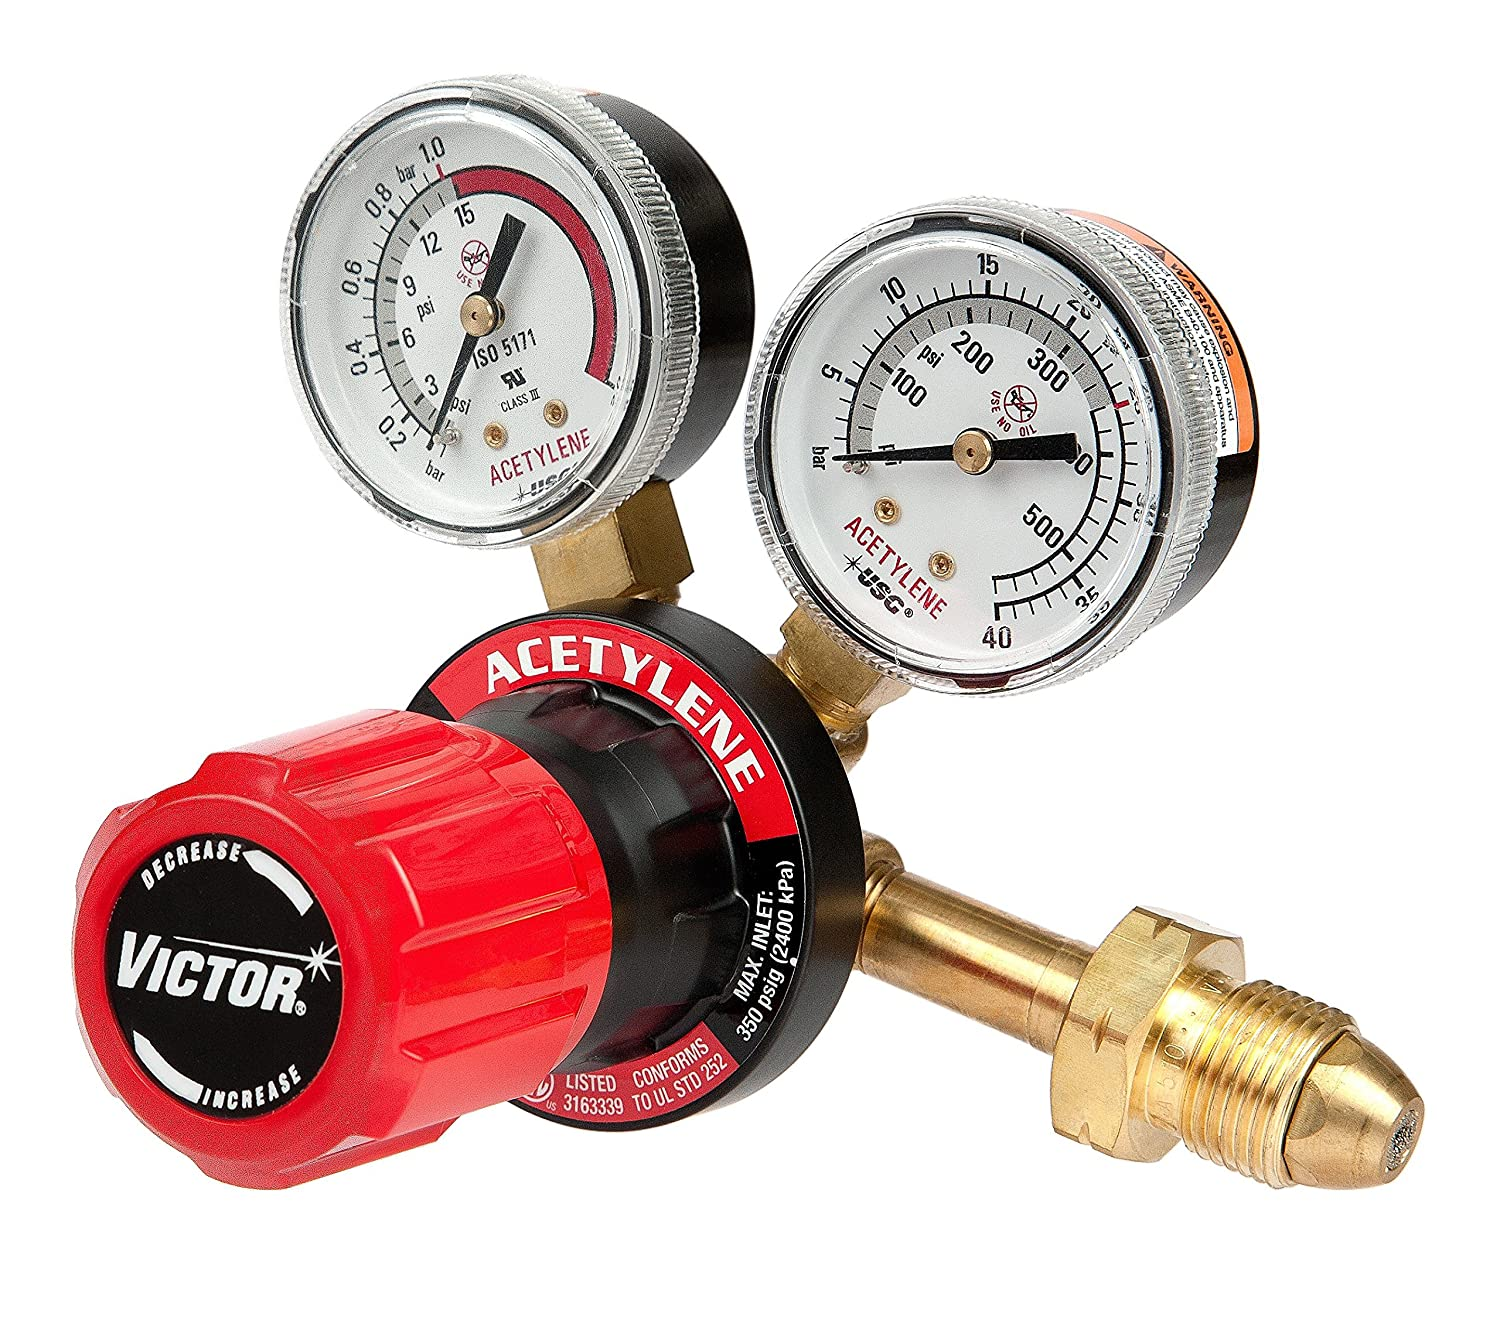 Victor Technologies 0781-9405 G250-15-510 Medium Duty Single Stage Acetylene Regulator, 15 psig Delivery Range, CGA 510 Inlet Connection